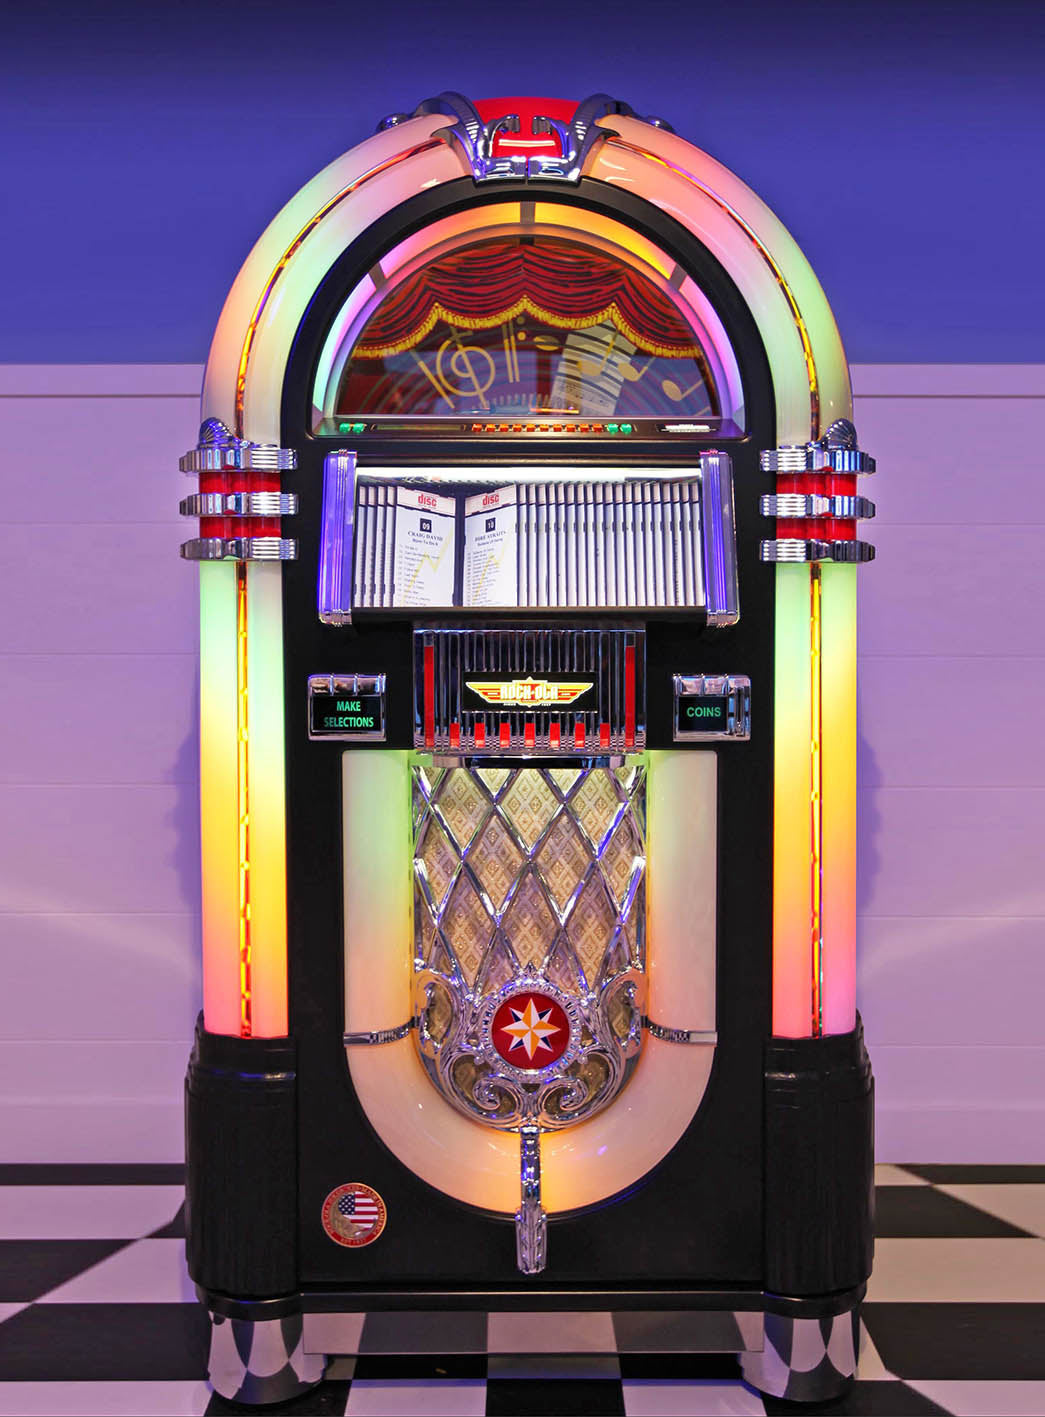 Happy National Jukebox Day from all of us here at Rock-Ola!